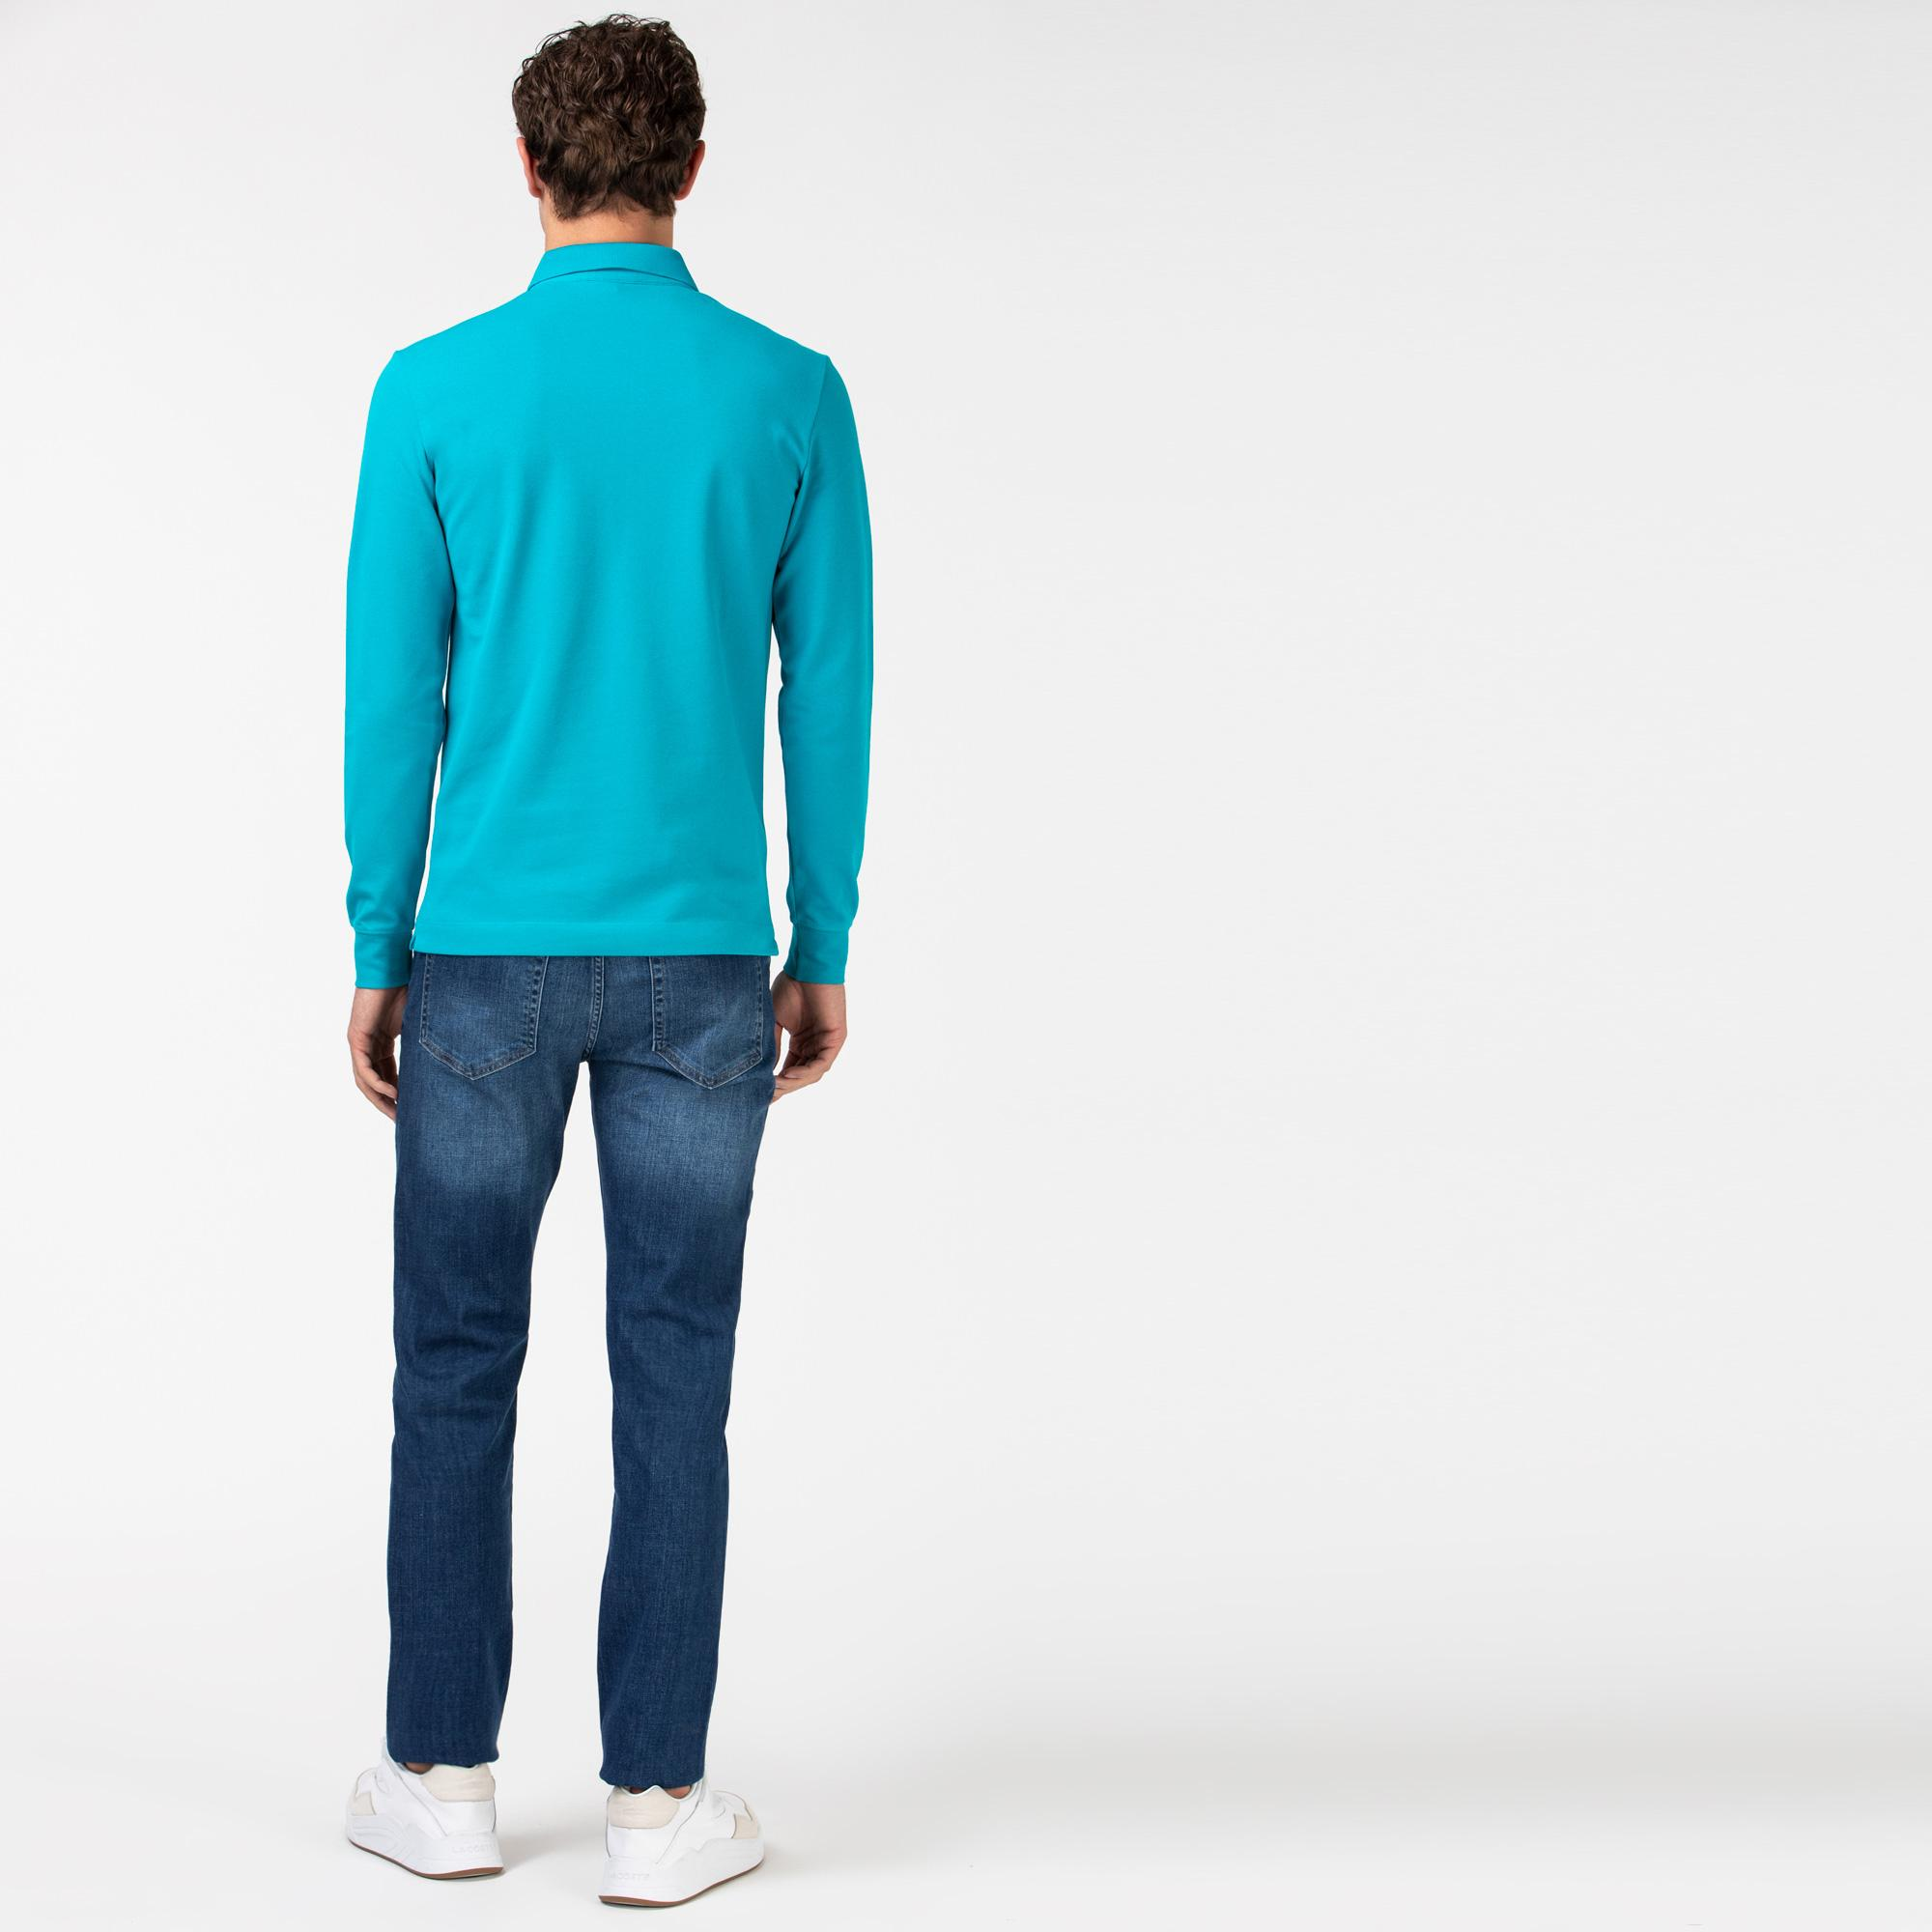 Lacoste Erkek Slim Fit Denim Lacivert Pantolon